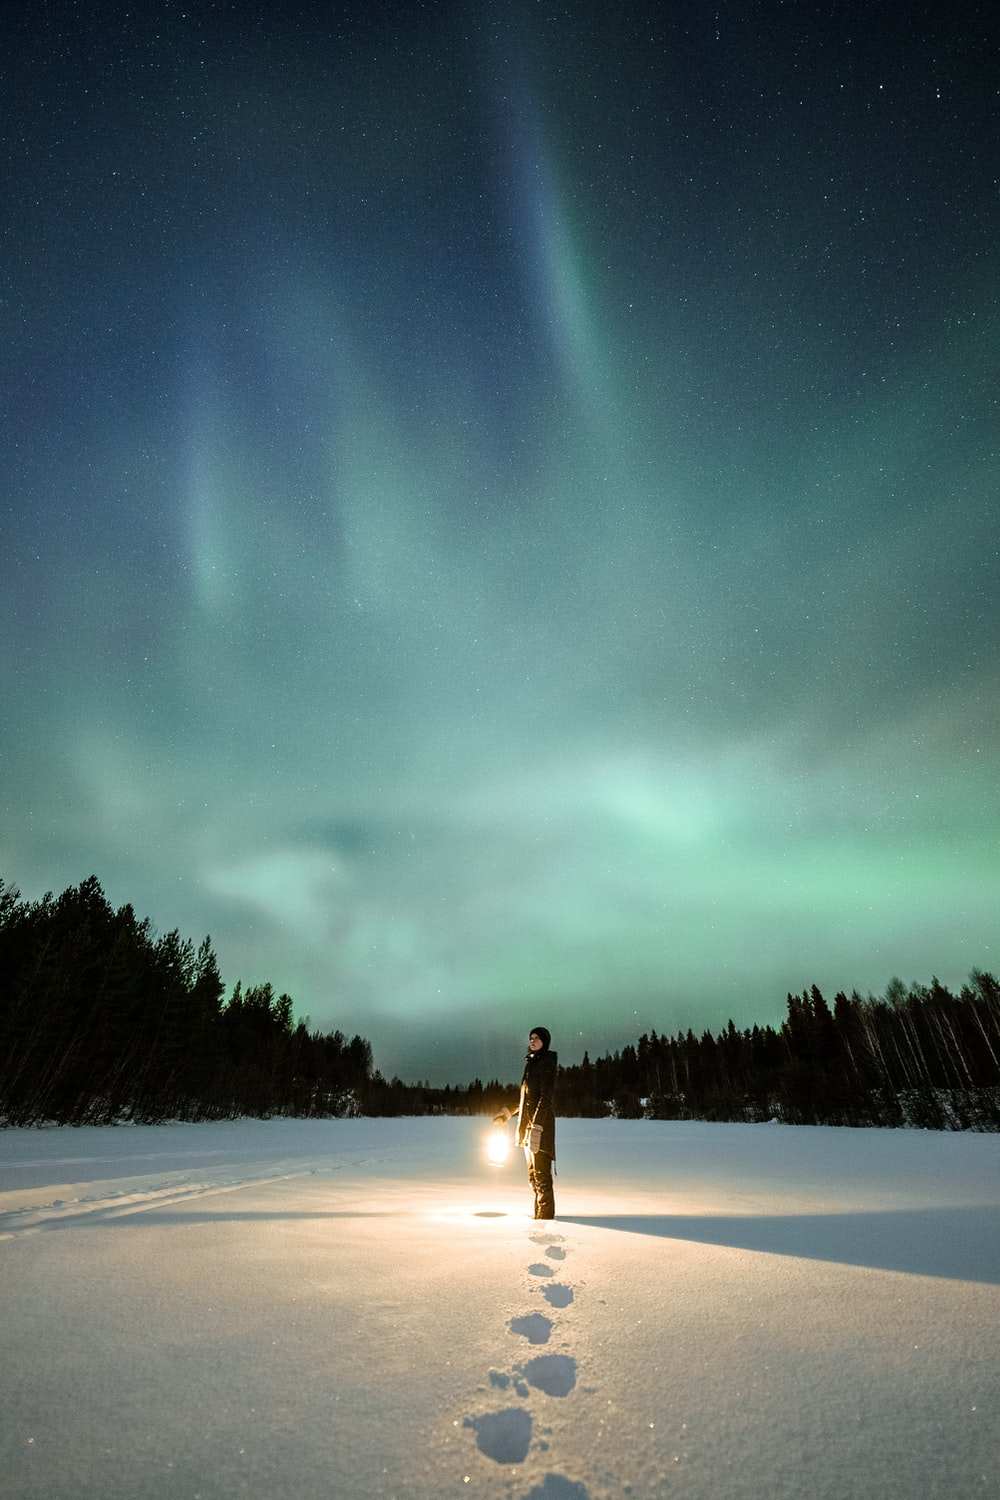 woman in white dress standing on snow covered ground during night time